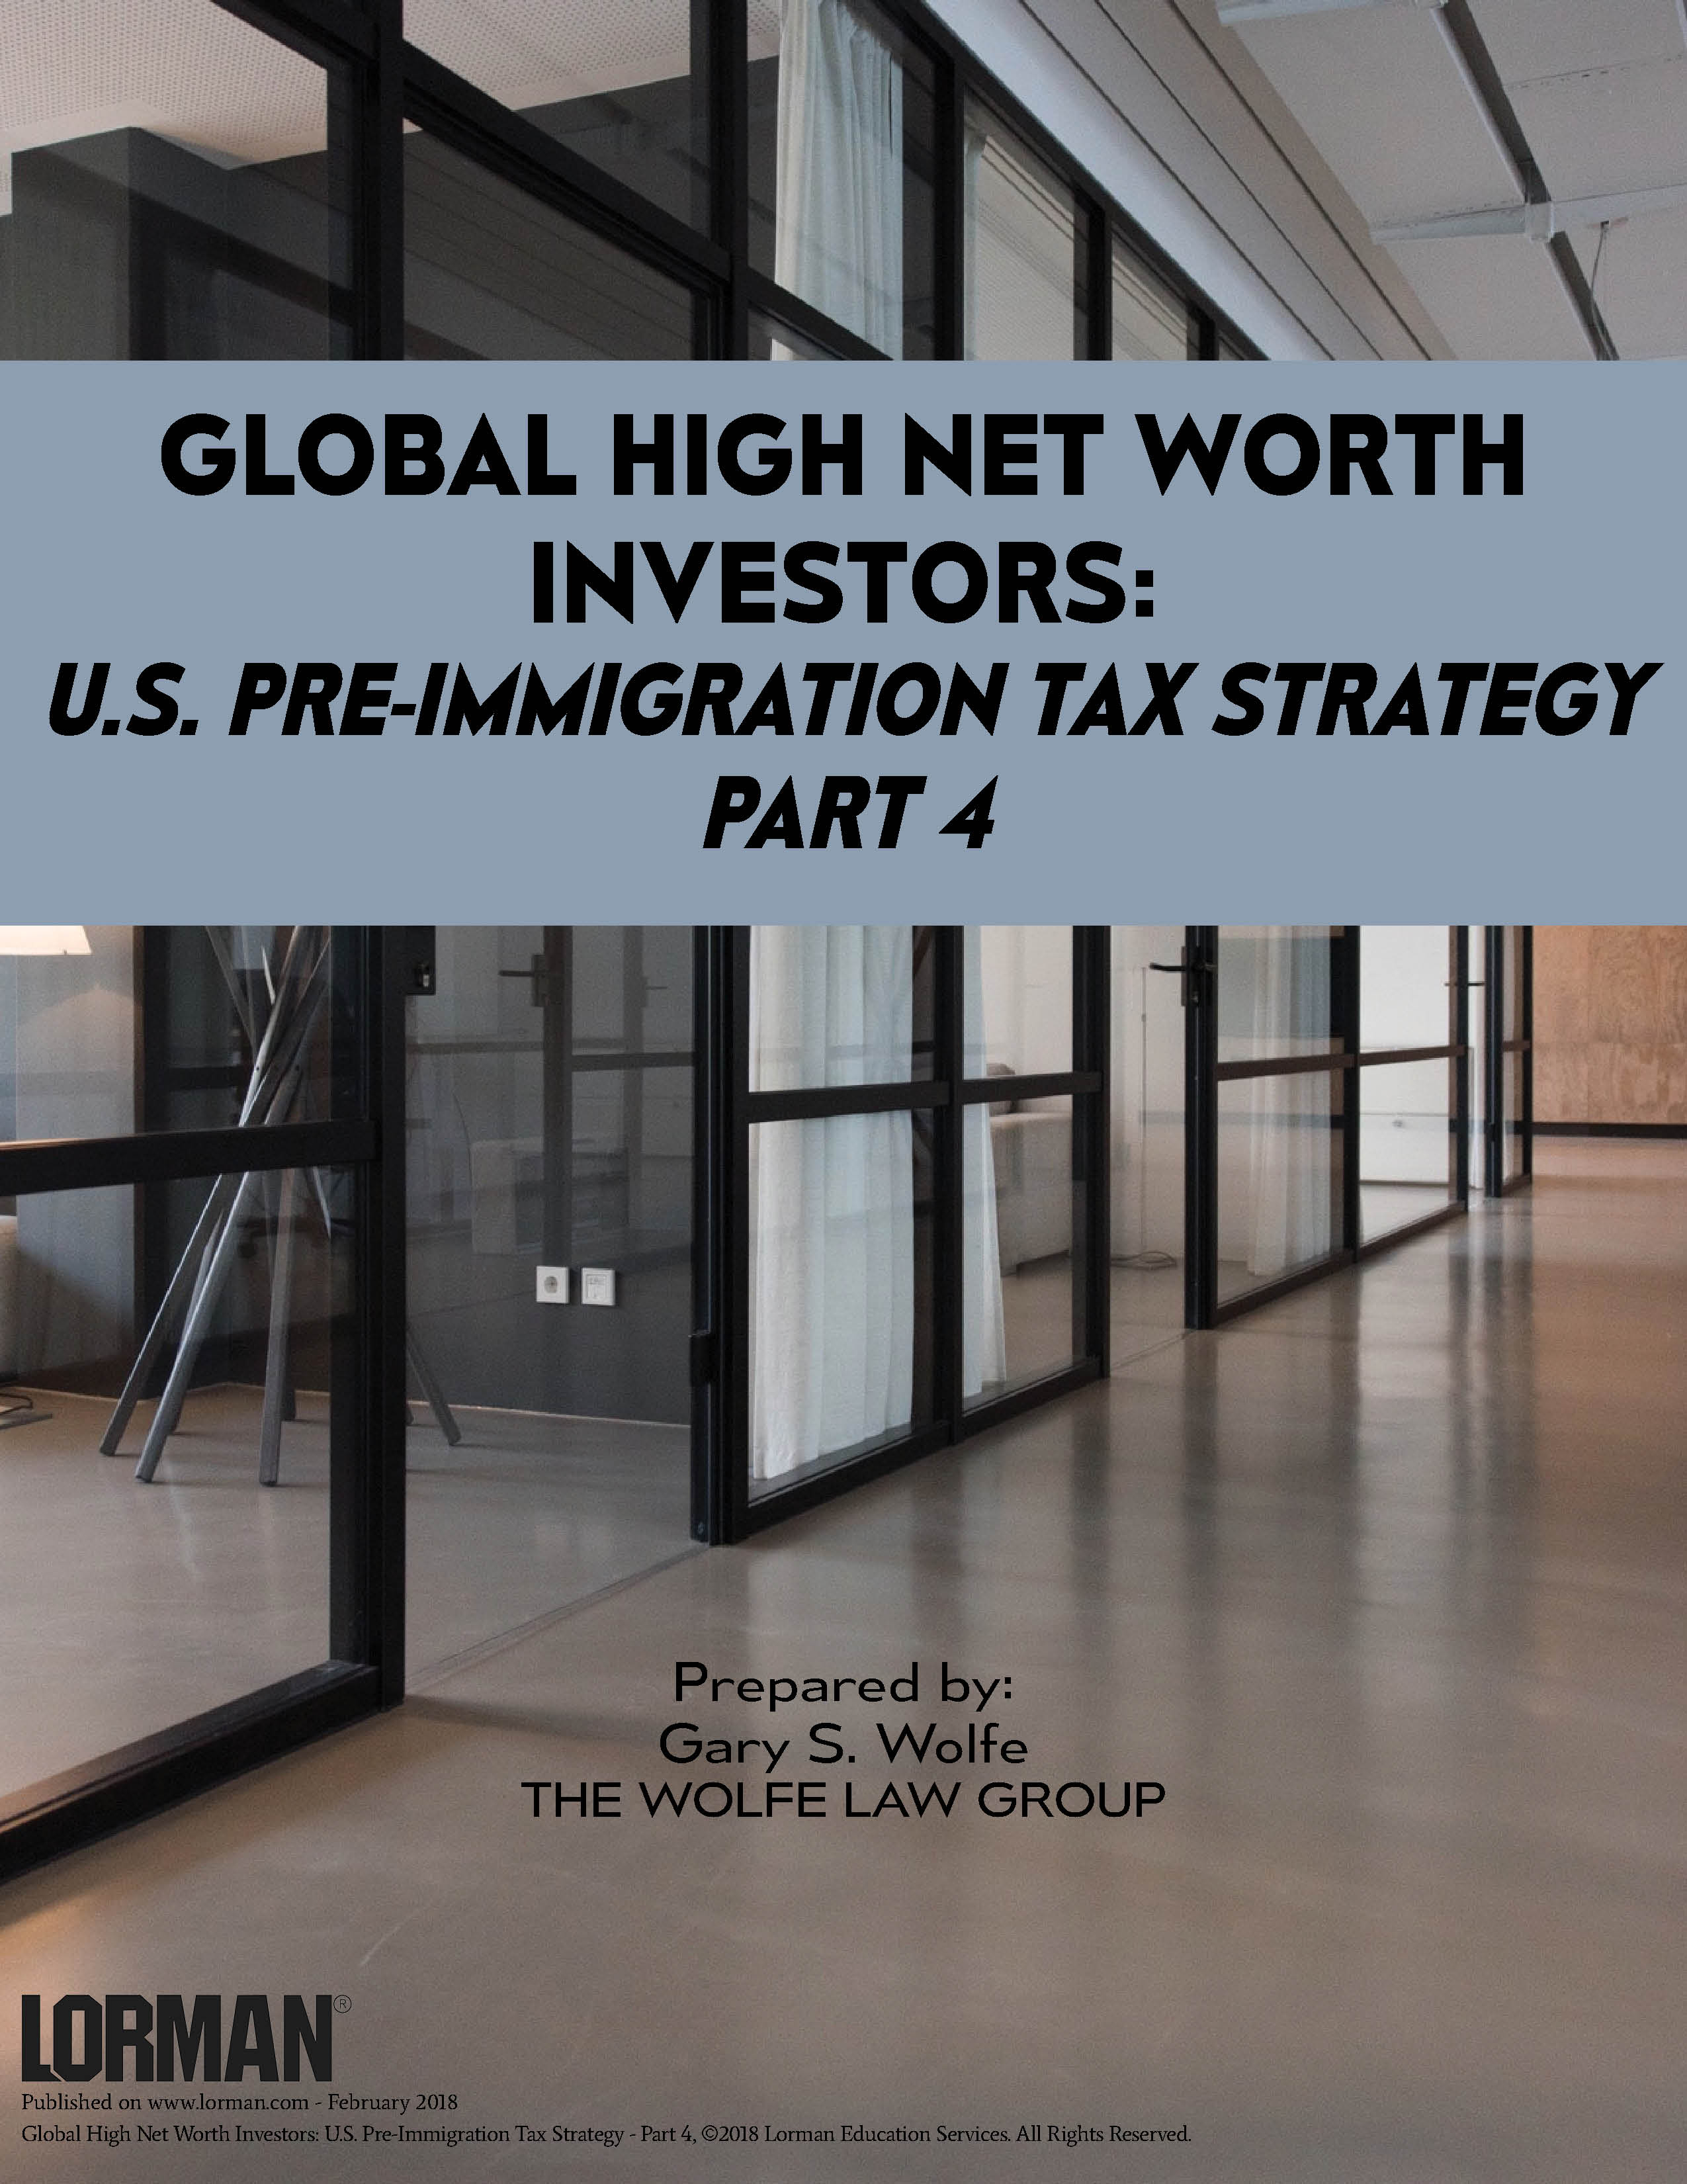 Global High Net Worth Investors: U.S. Pre-Immigration Tax Strategy - Part 4